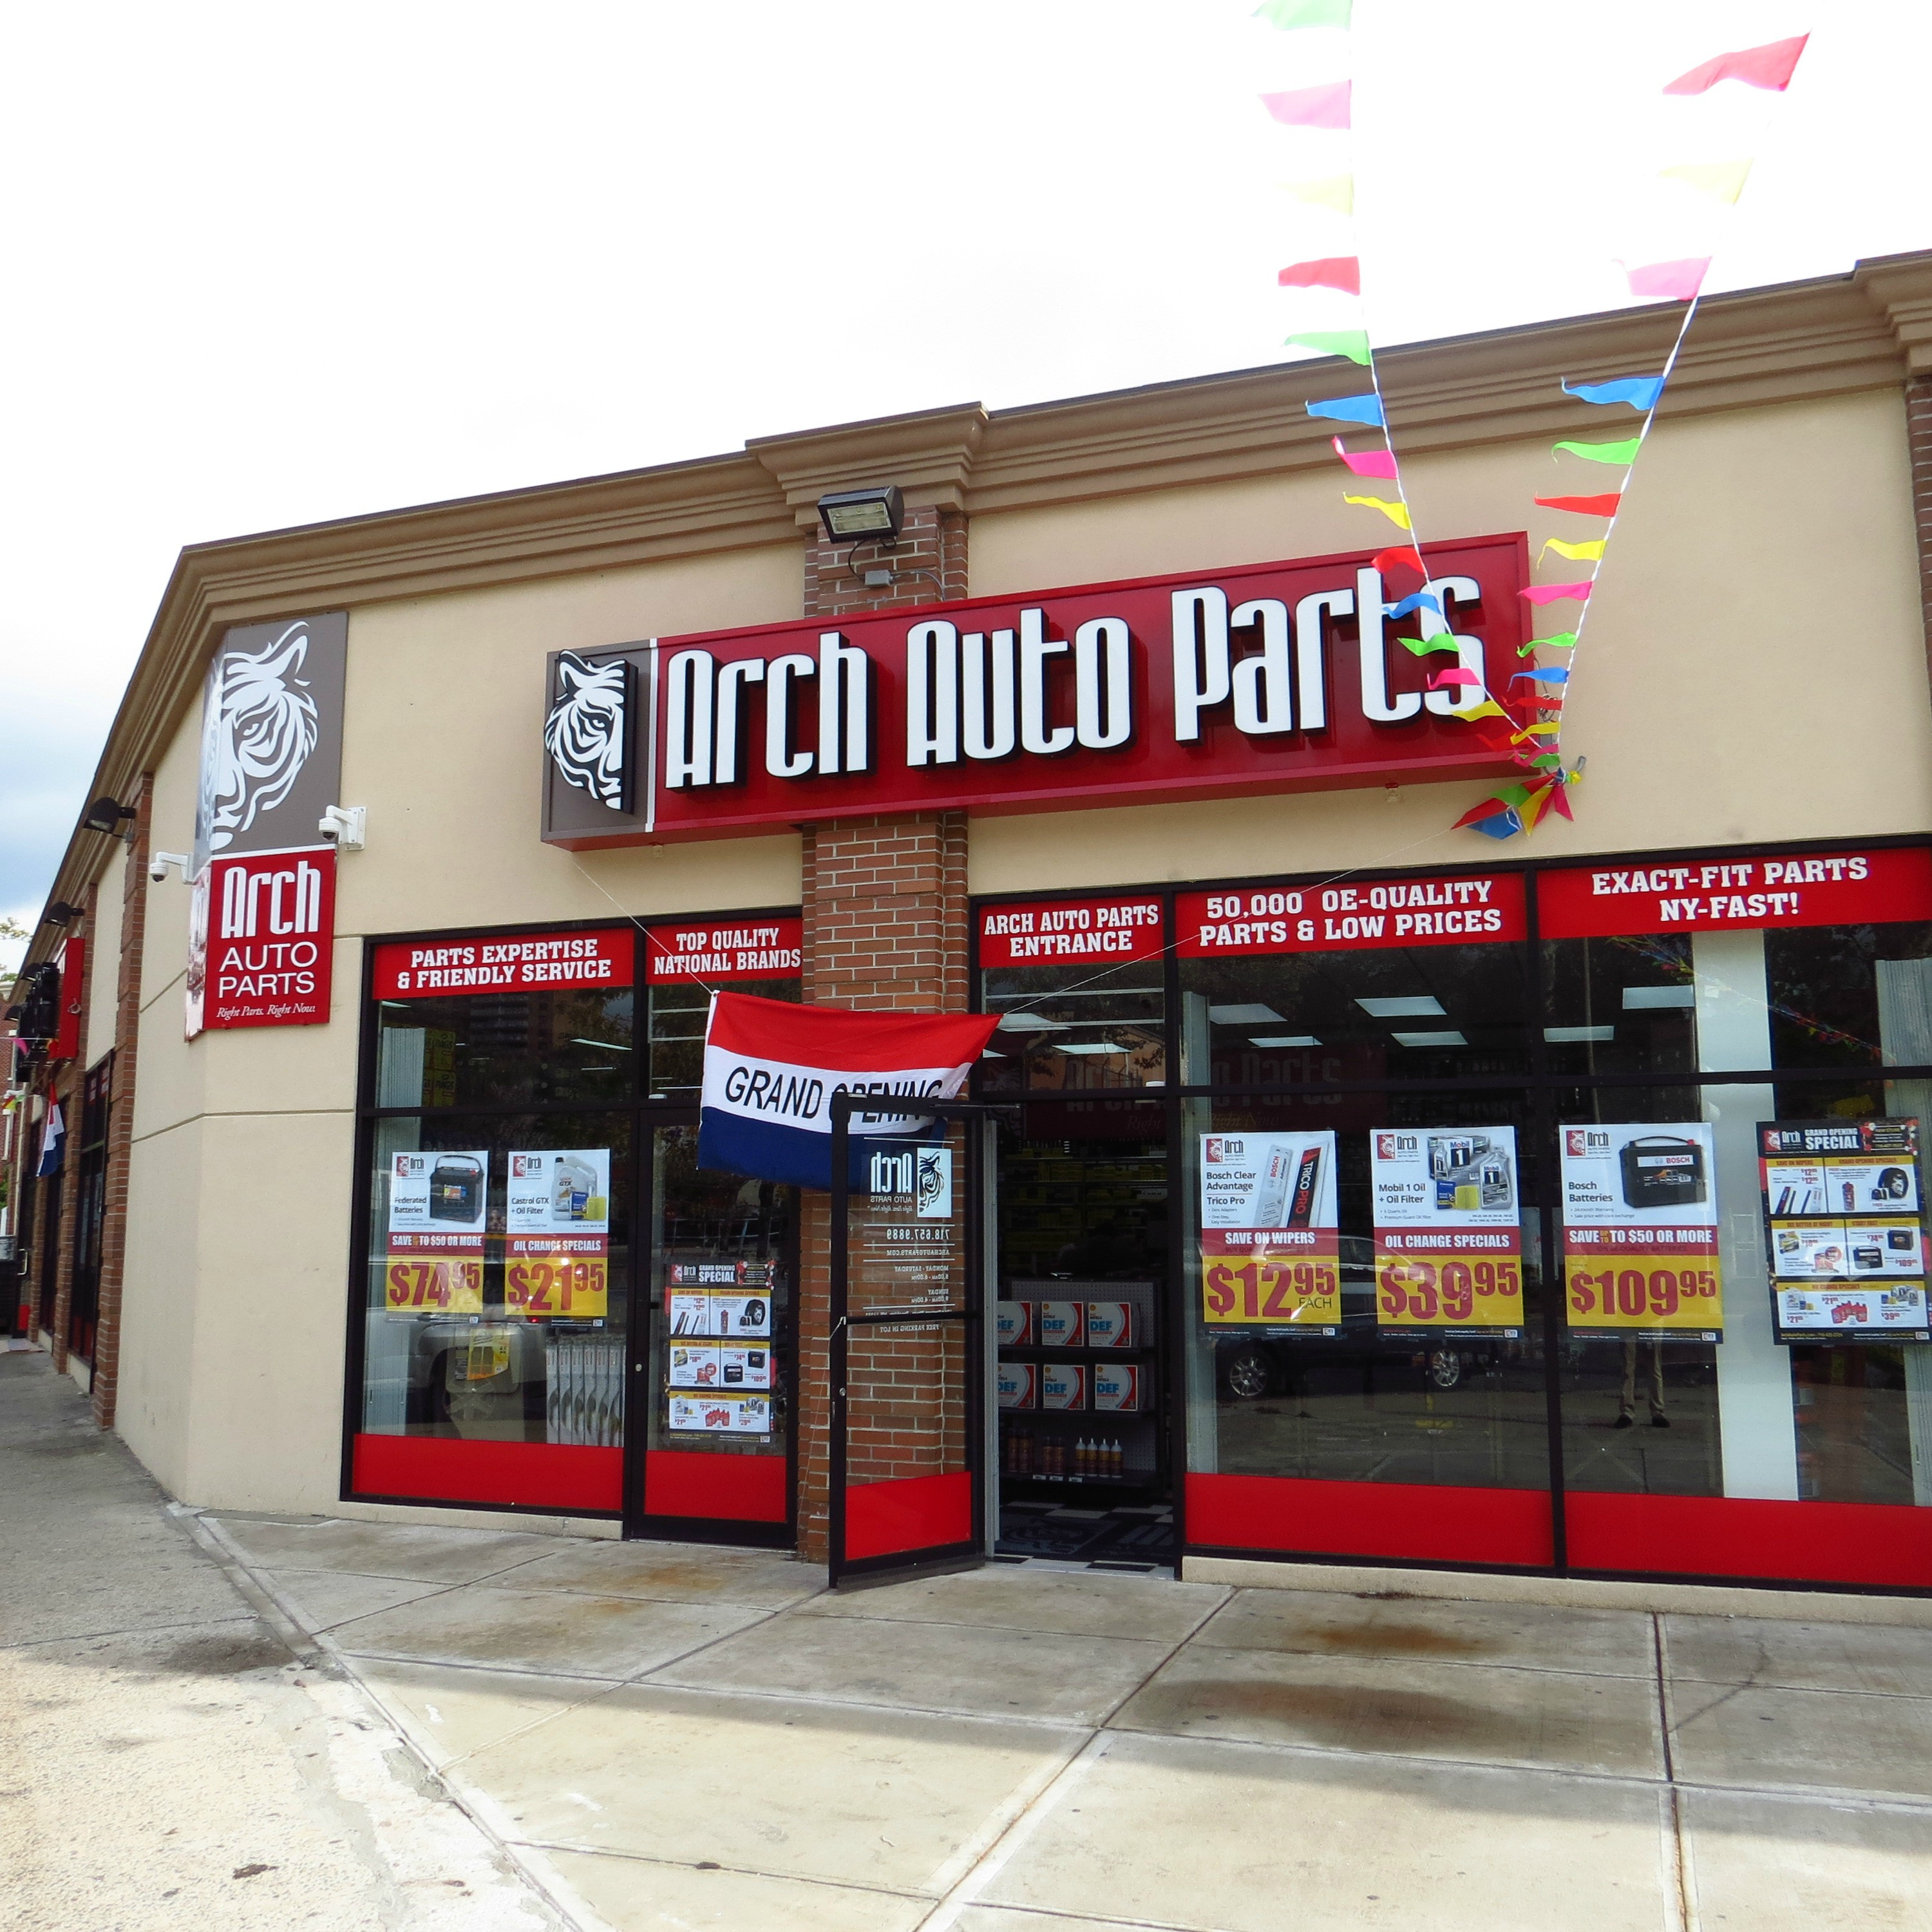 arch auto parts opens 13th store in brooklyn extends network of trusted ny stores for highest. Black Bedroom Furniture Sets. Home Design Ideas